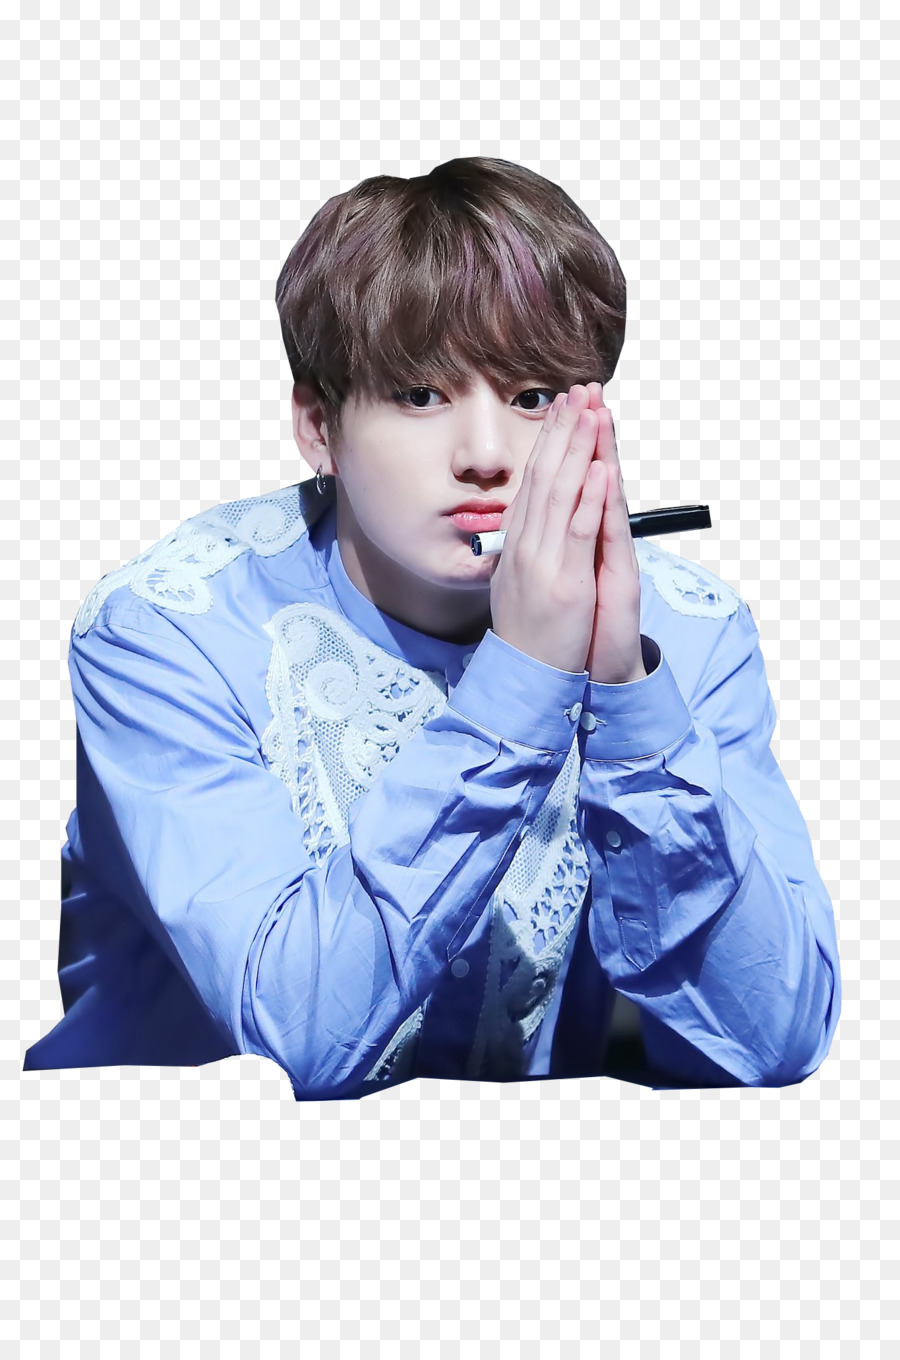 Jungkook 2017 BTS Live Trilogy Episode III The Wings Tour Fire